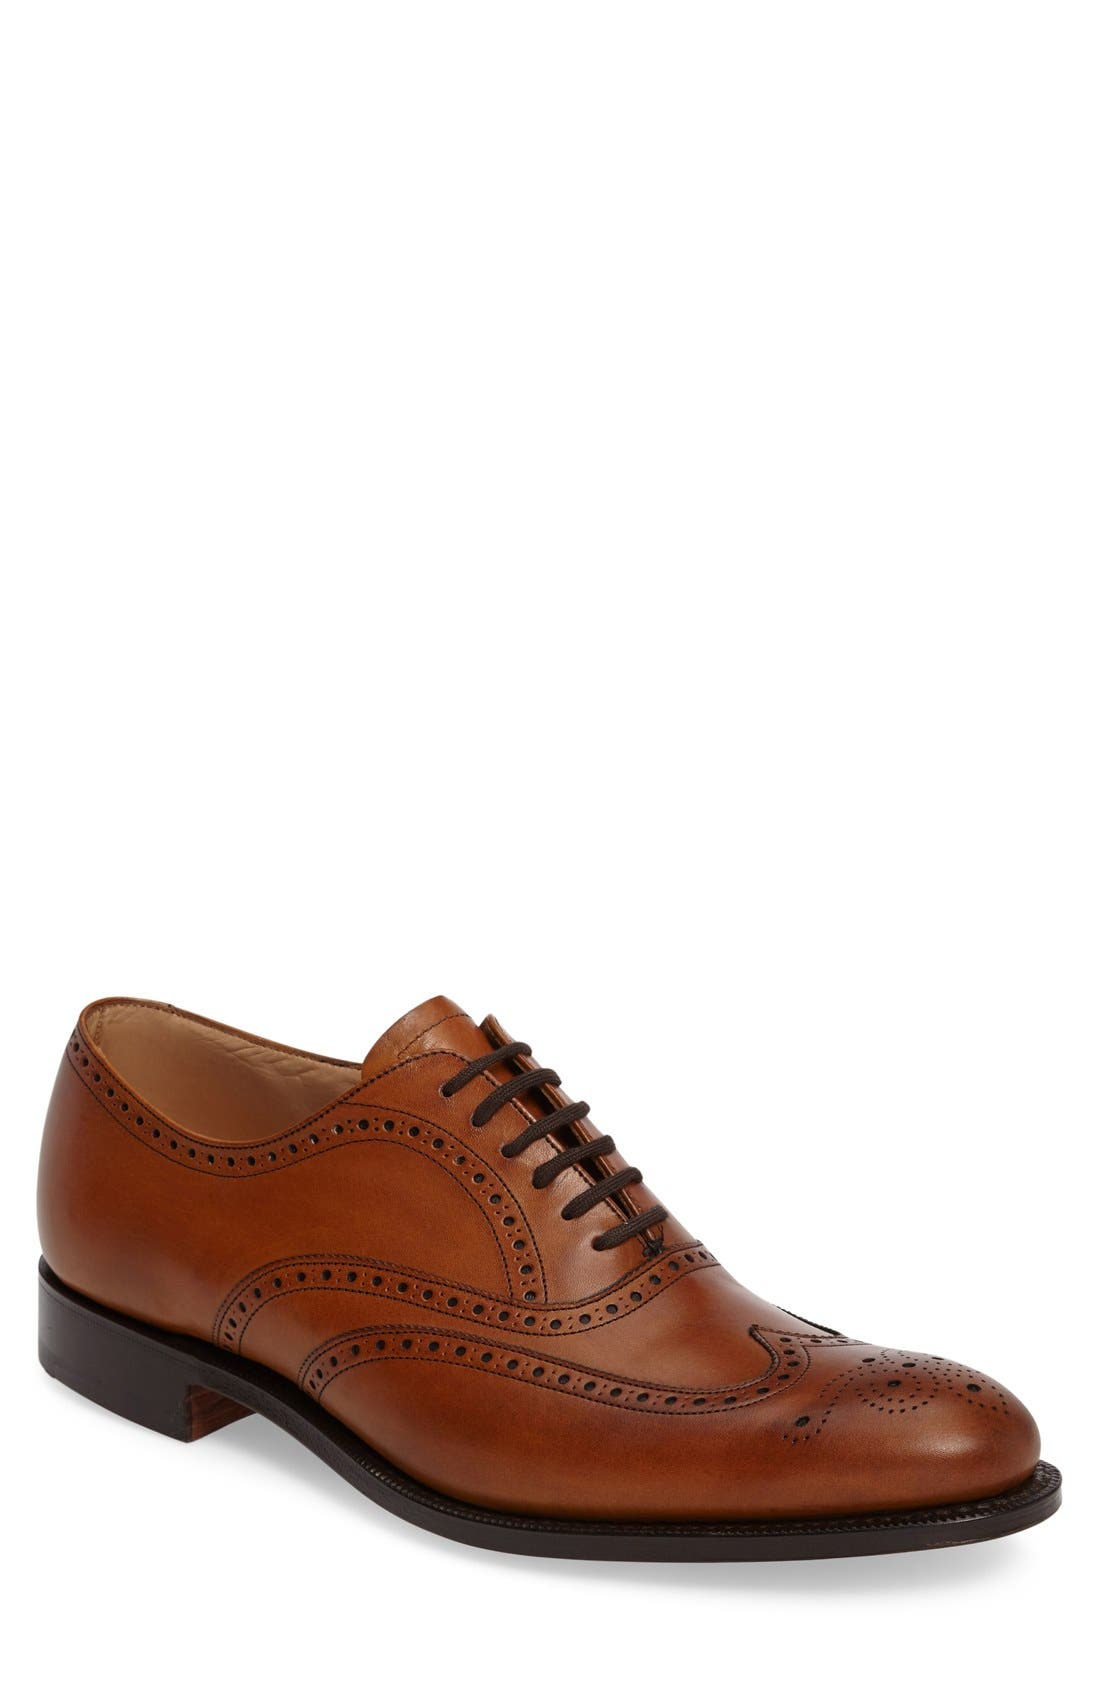 'Berlin' Wingtip Oxford,                             Main thumbnail 1, color,                             Brown Leather